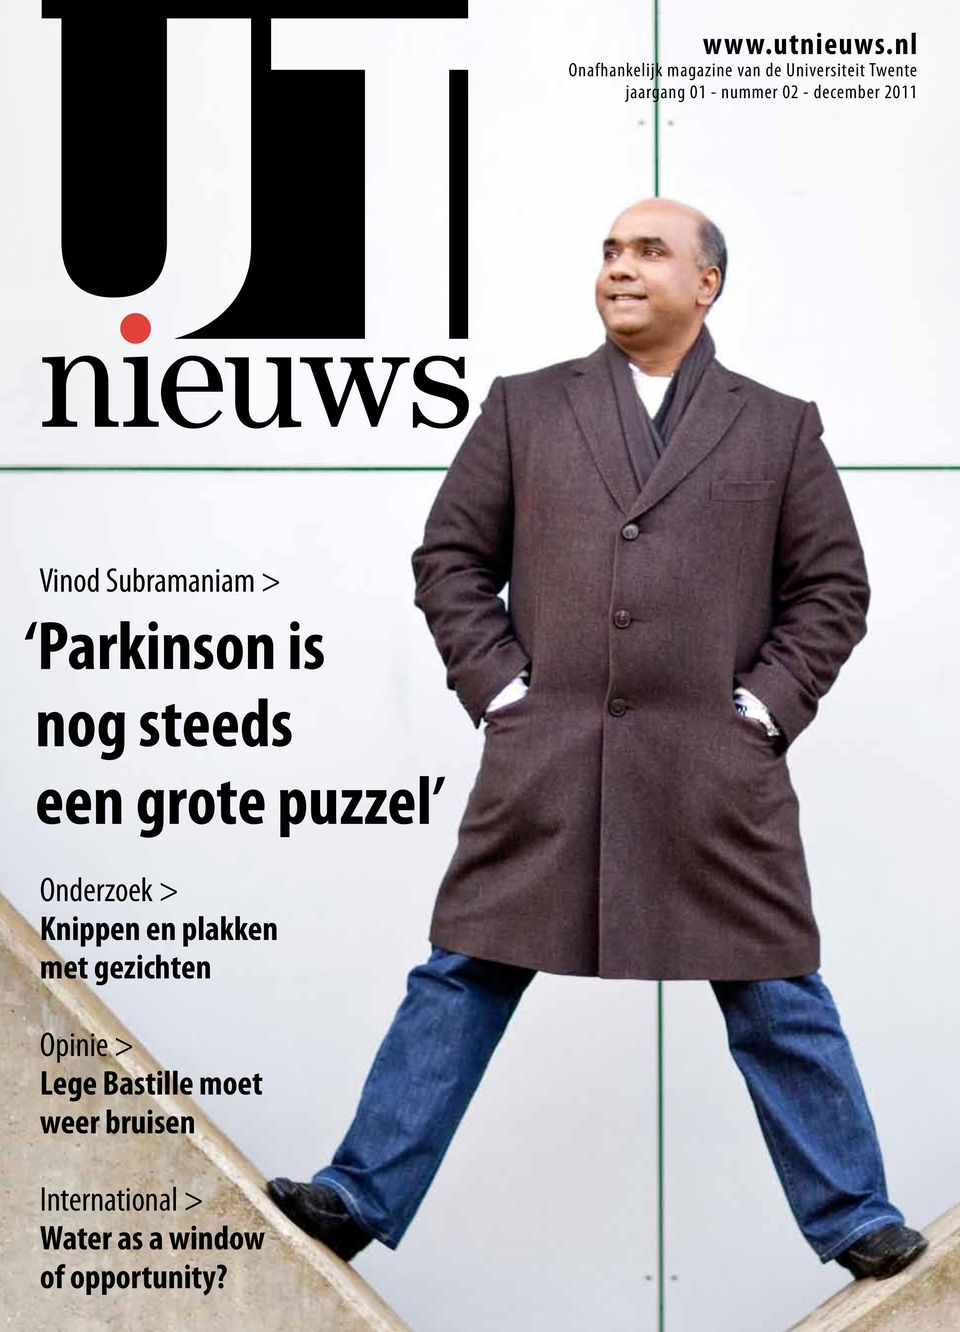 02 - december 2011 Vinod Subramaniam > Parkinson is nog steeds een grote